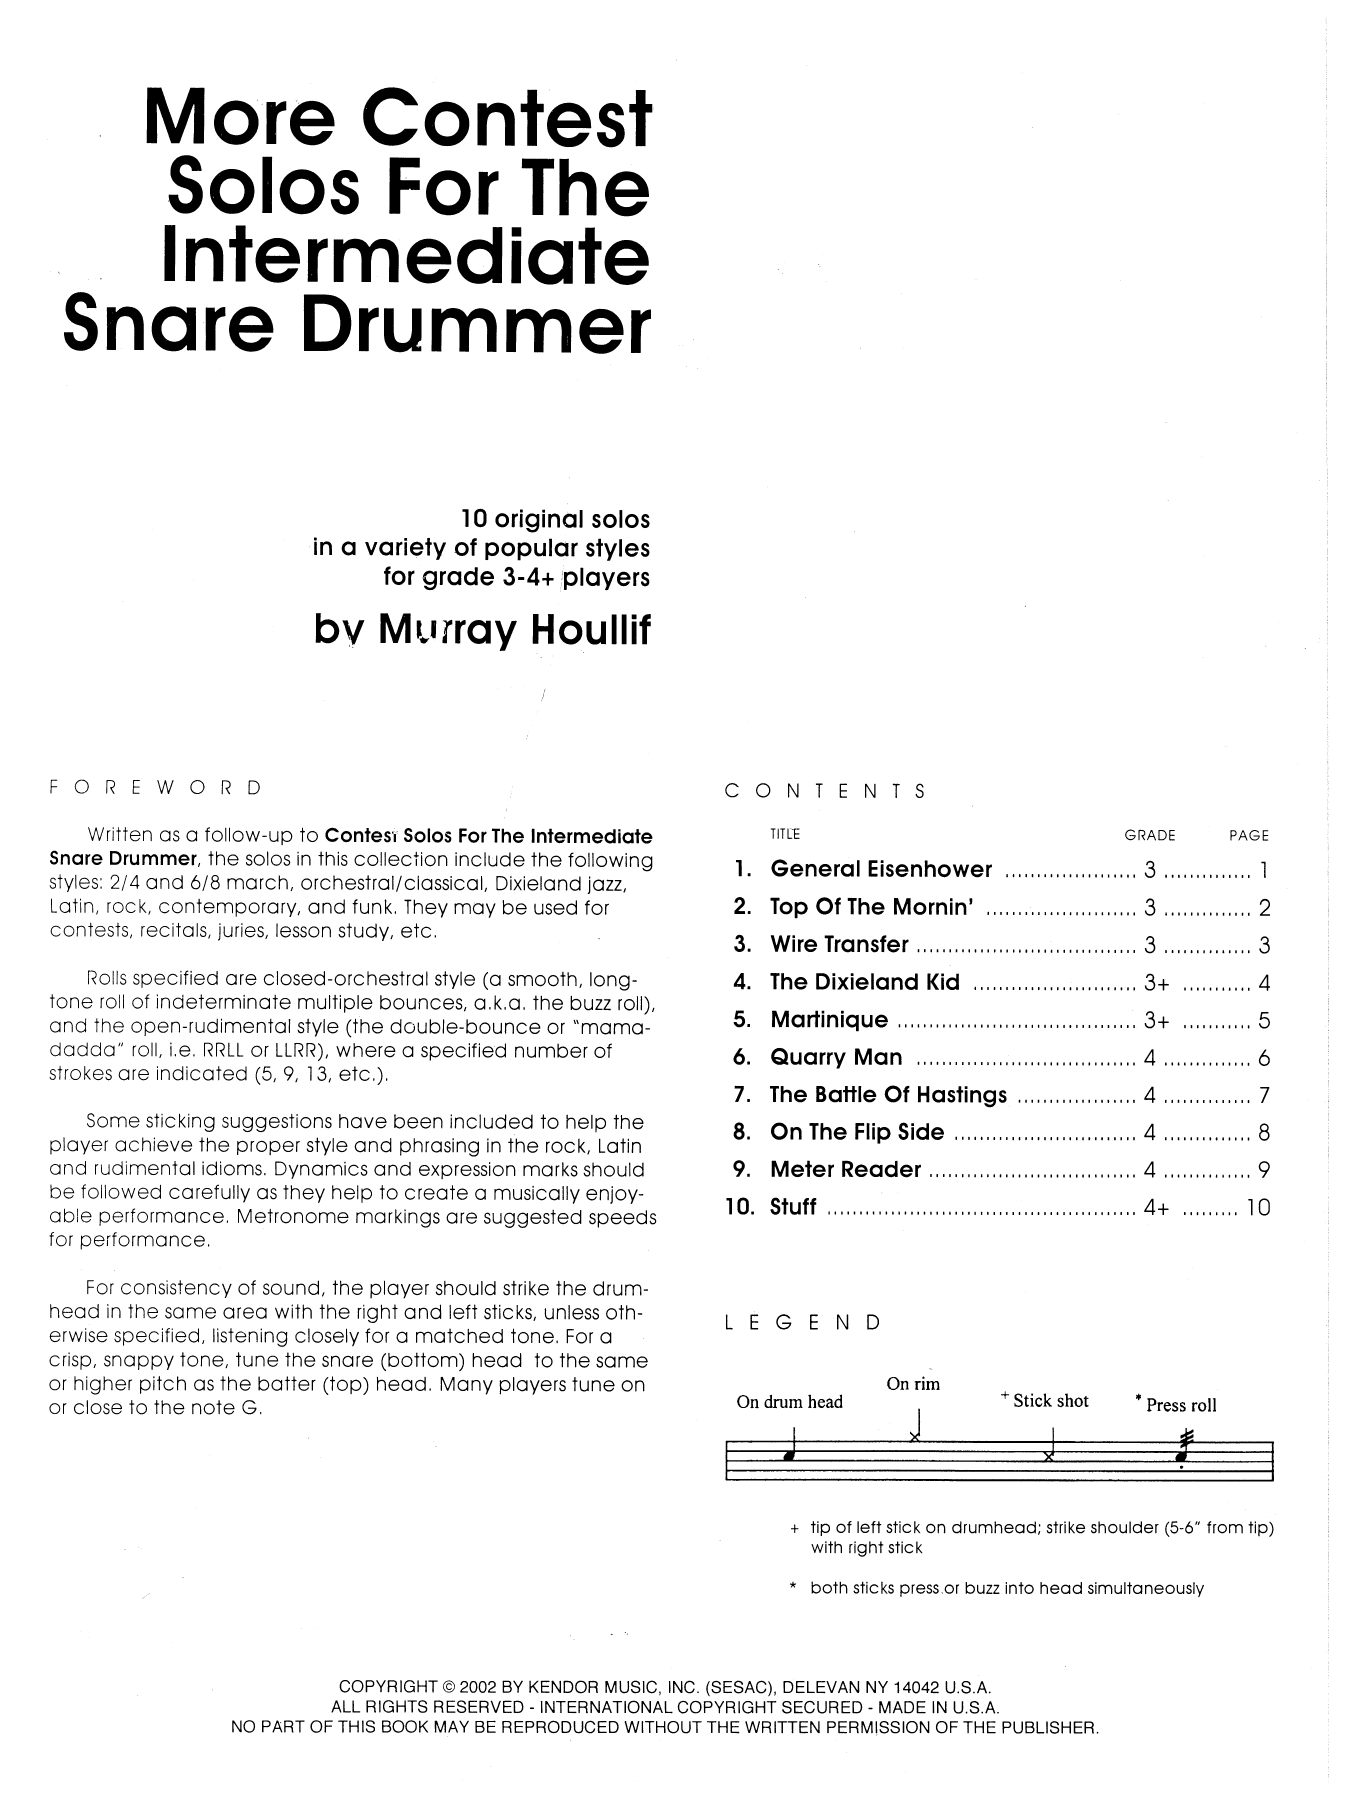 More Contest Solos For The Intermediate Snare Drummer Sheet Music